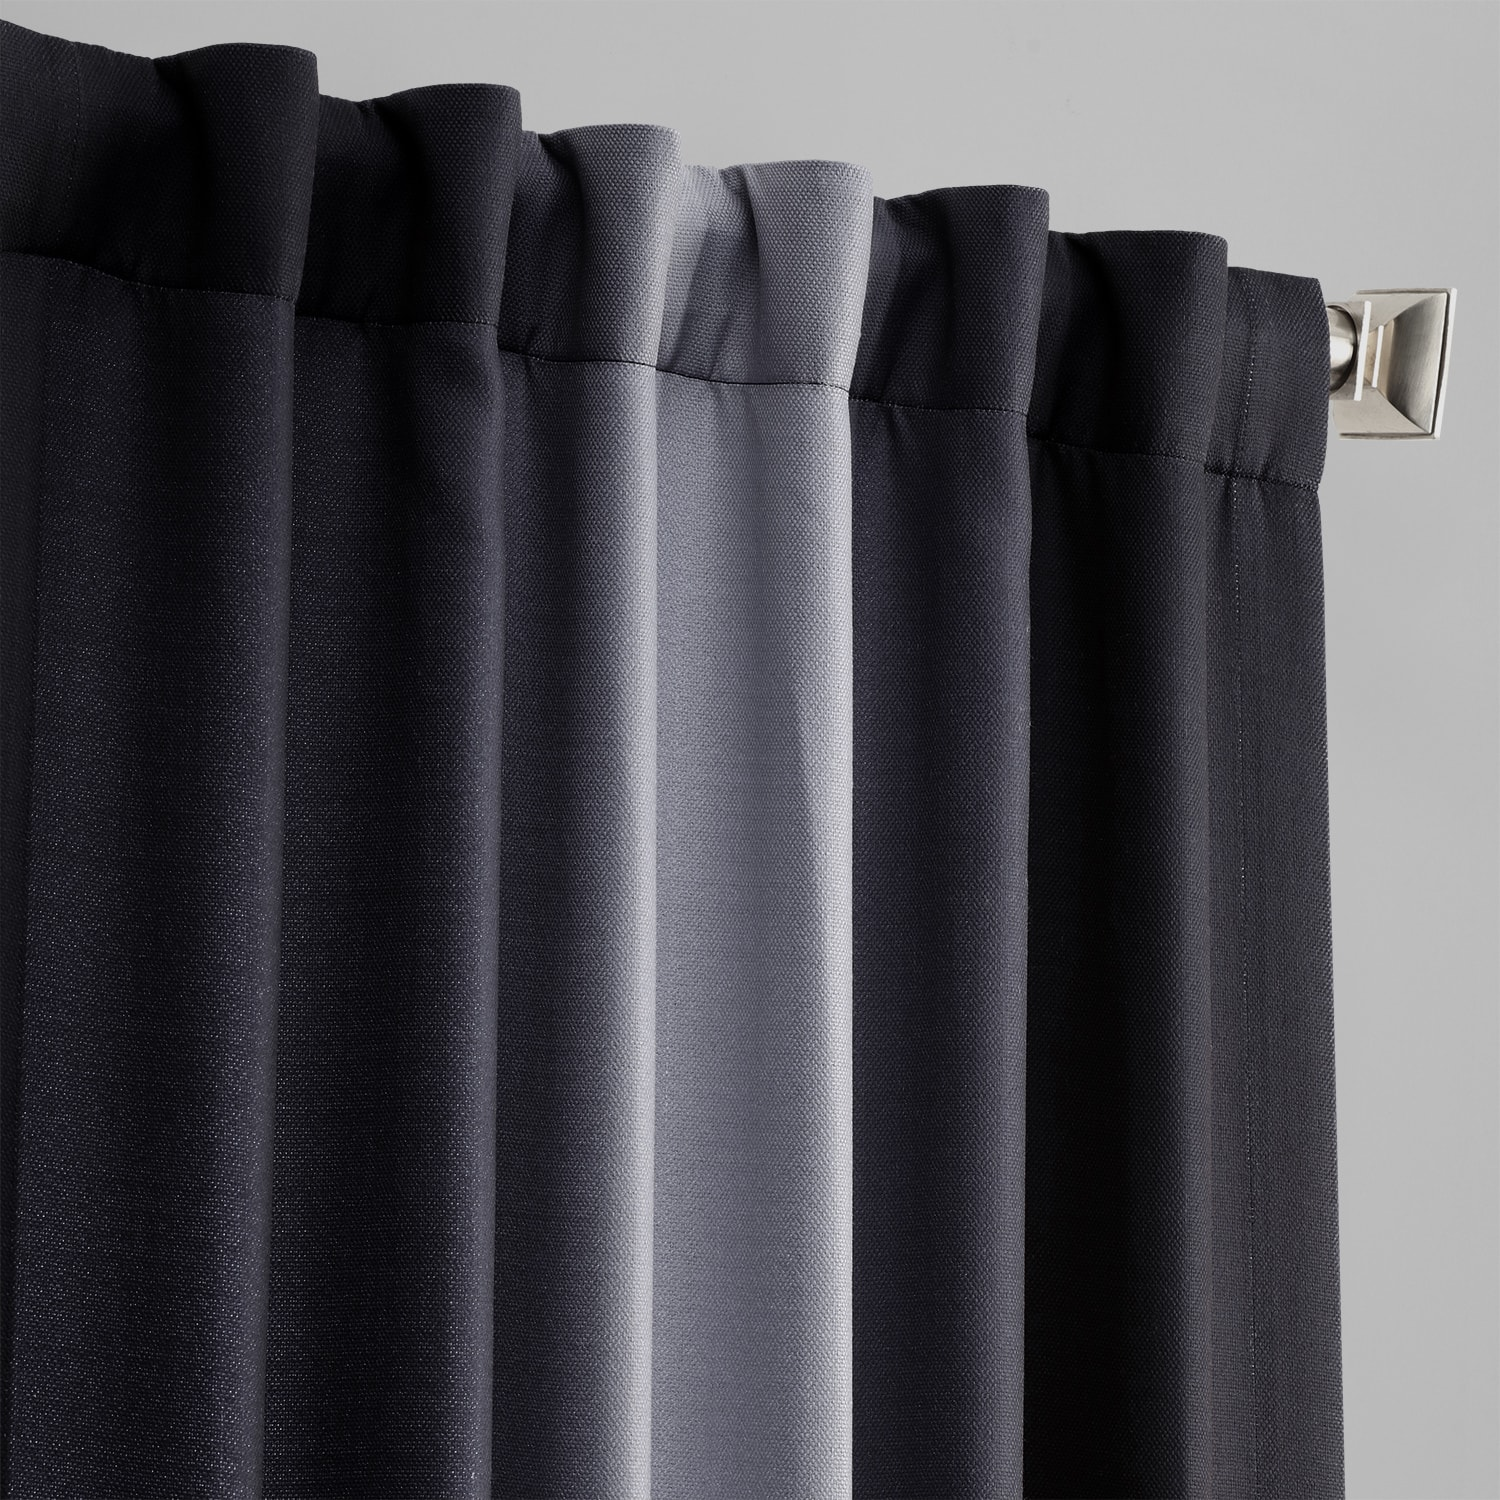 Parallel Grey Printed Linen Textured Blackout Curtain